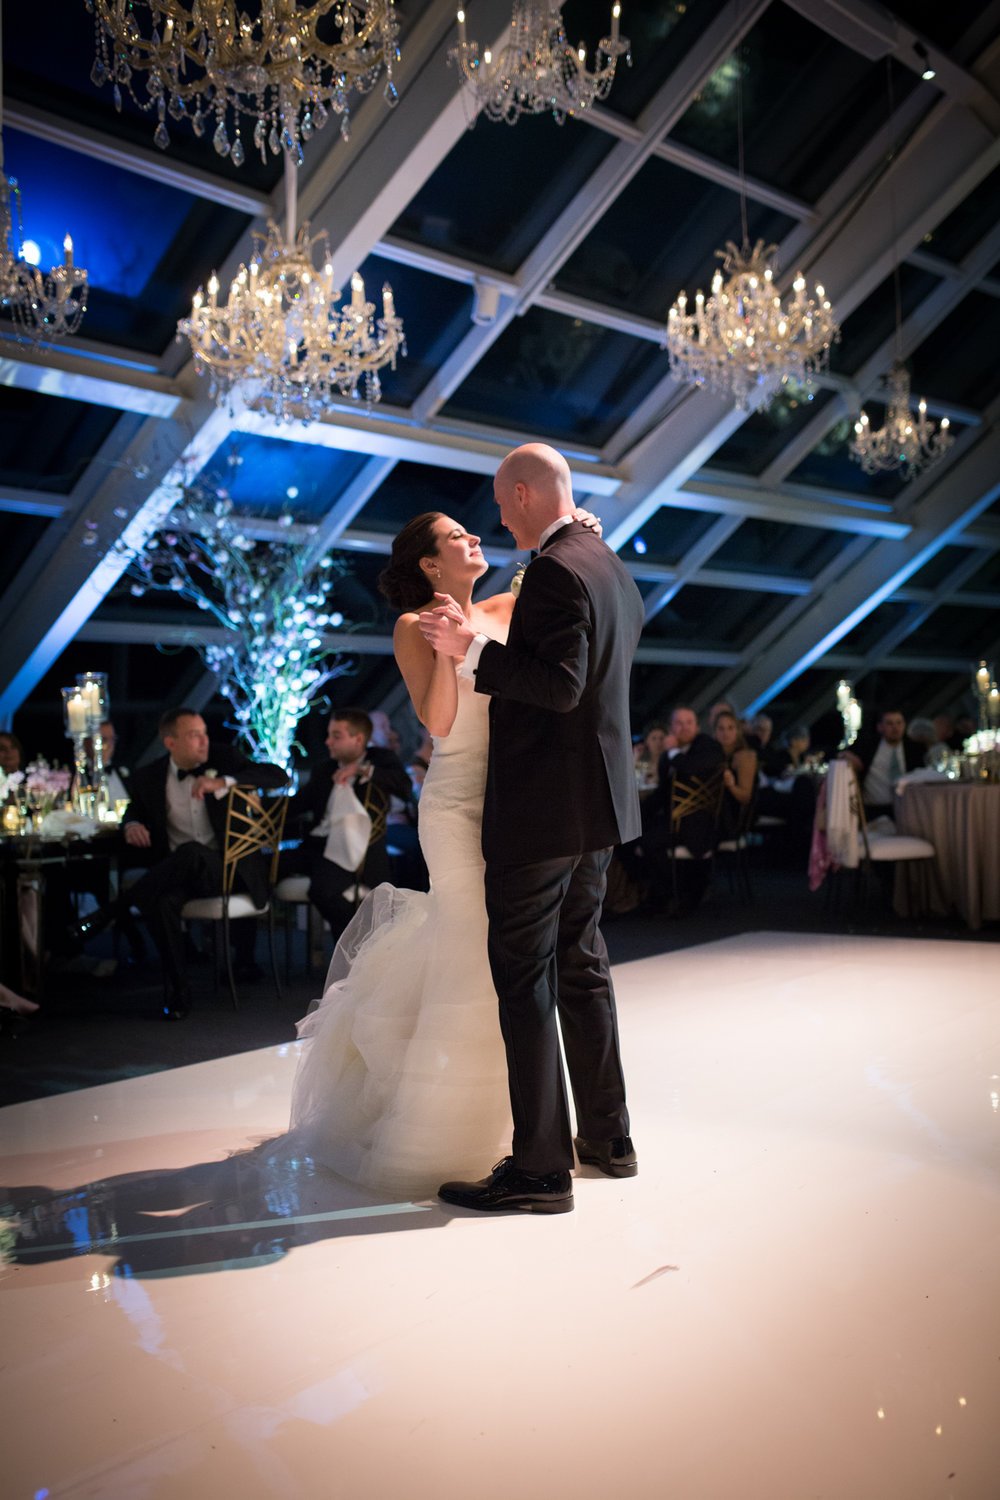 Bride and groom's first dance at Adler Planetarium wedding.